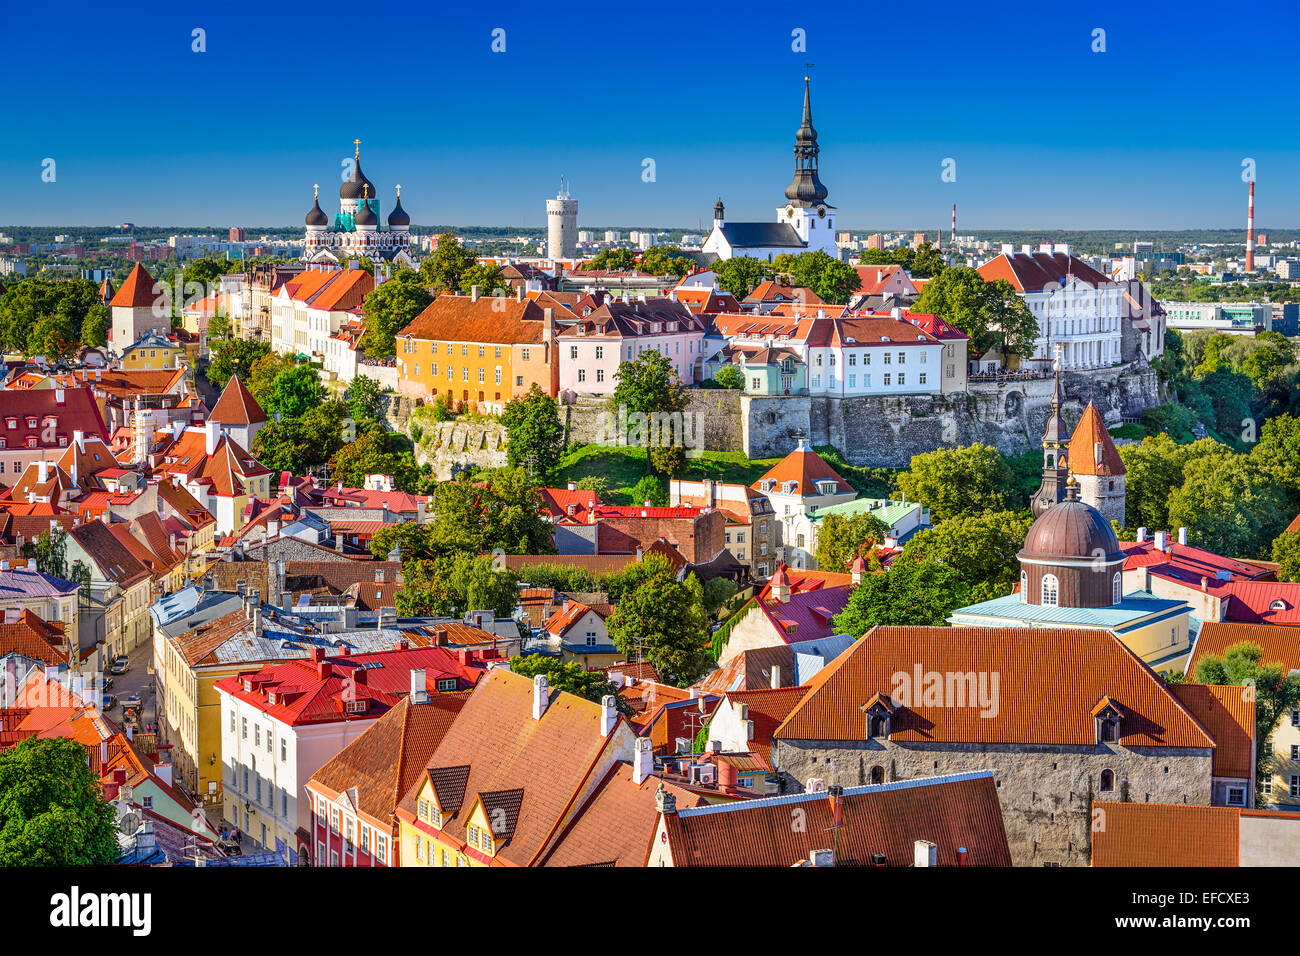 Tallinn, Estonia, old town skyline of Toompea Hill. - Stock Image